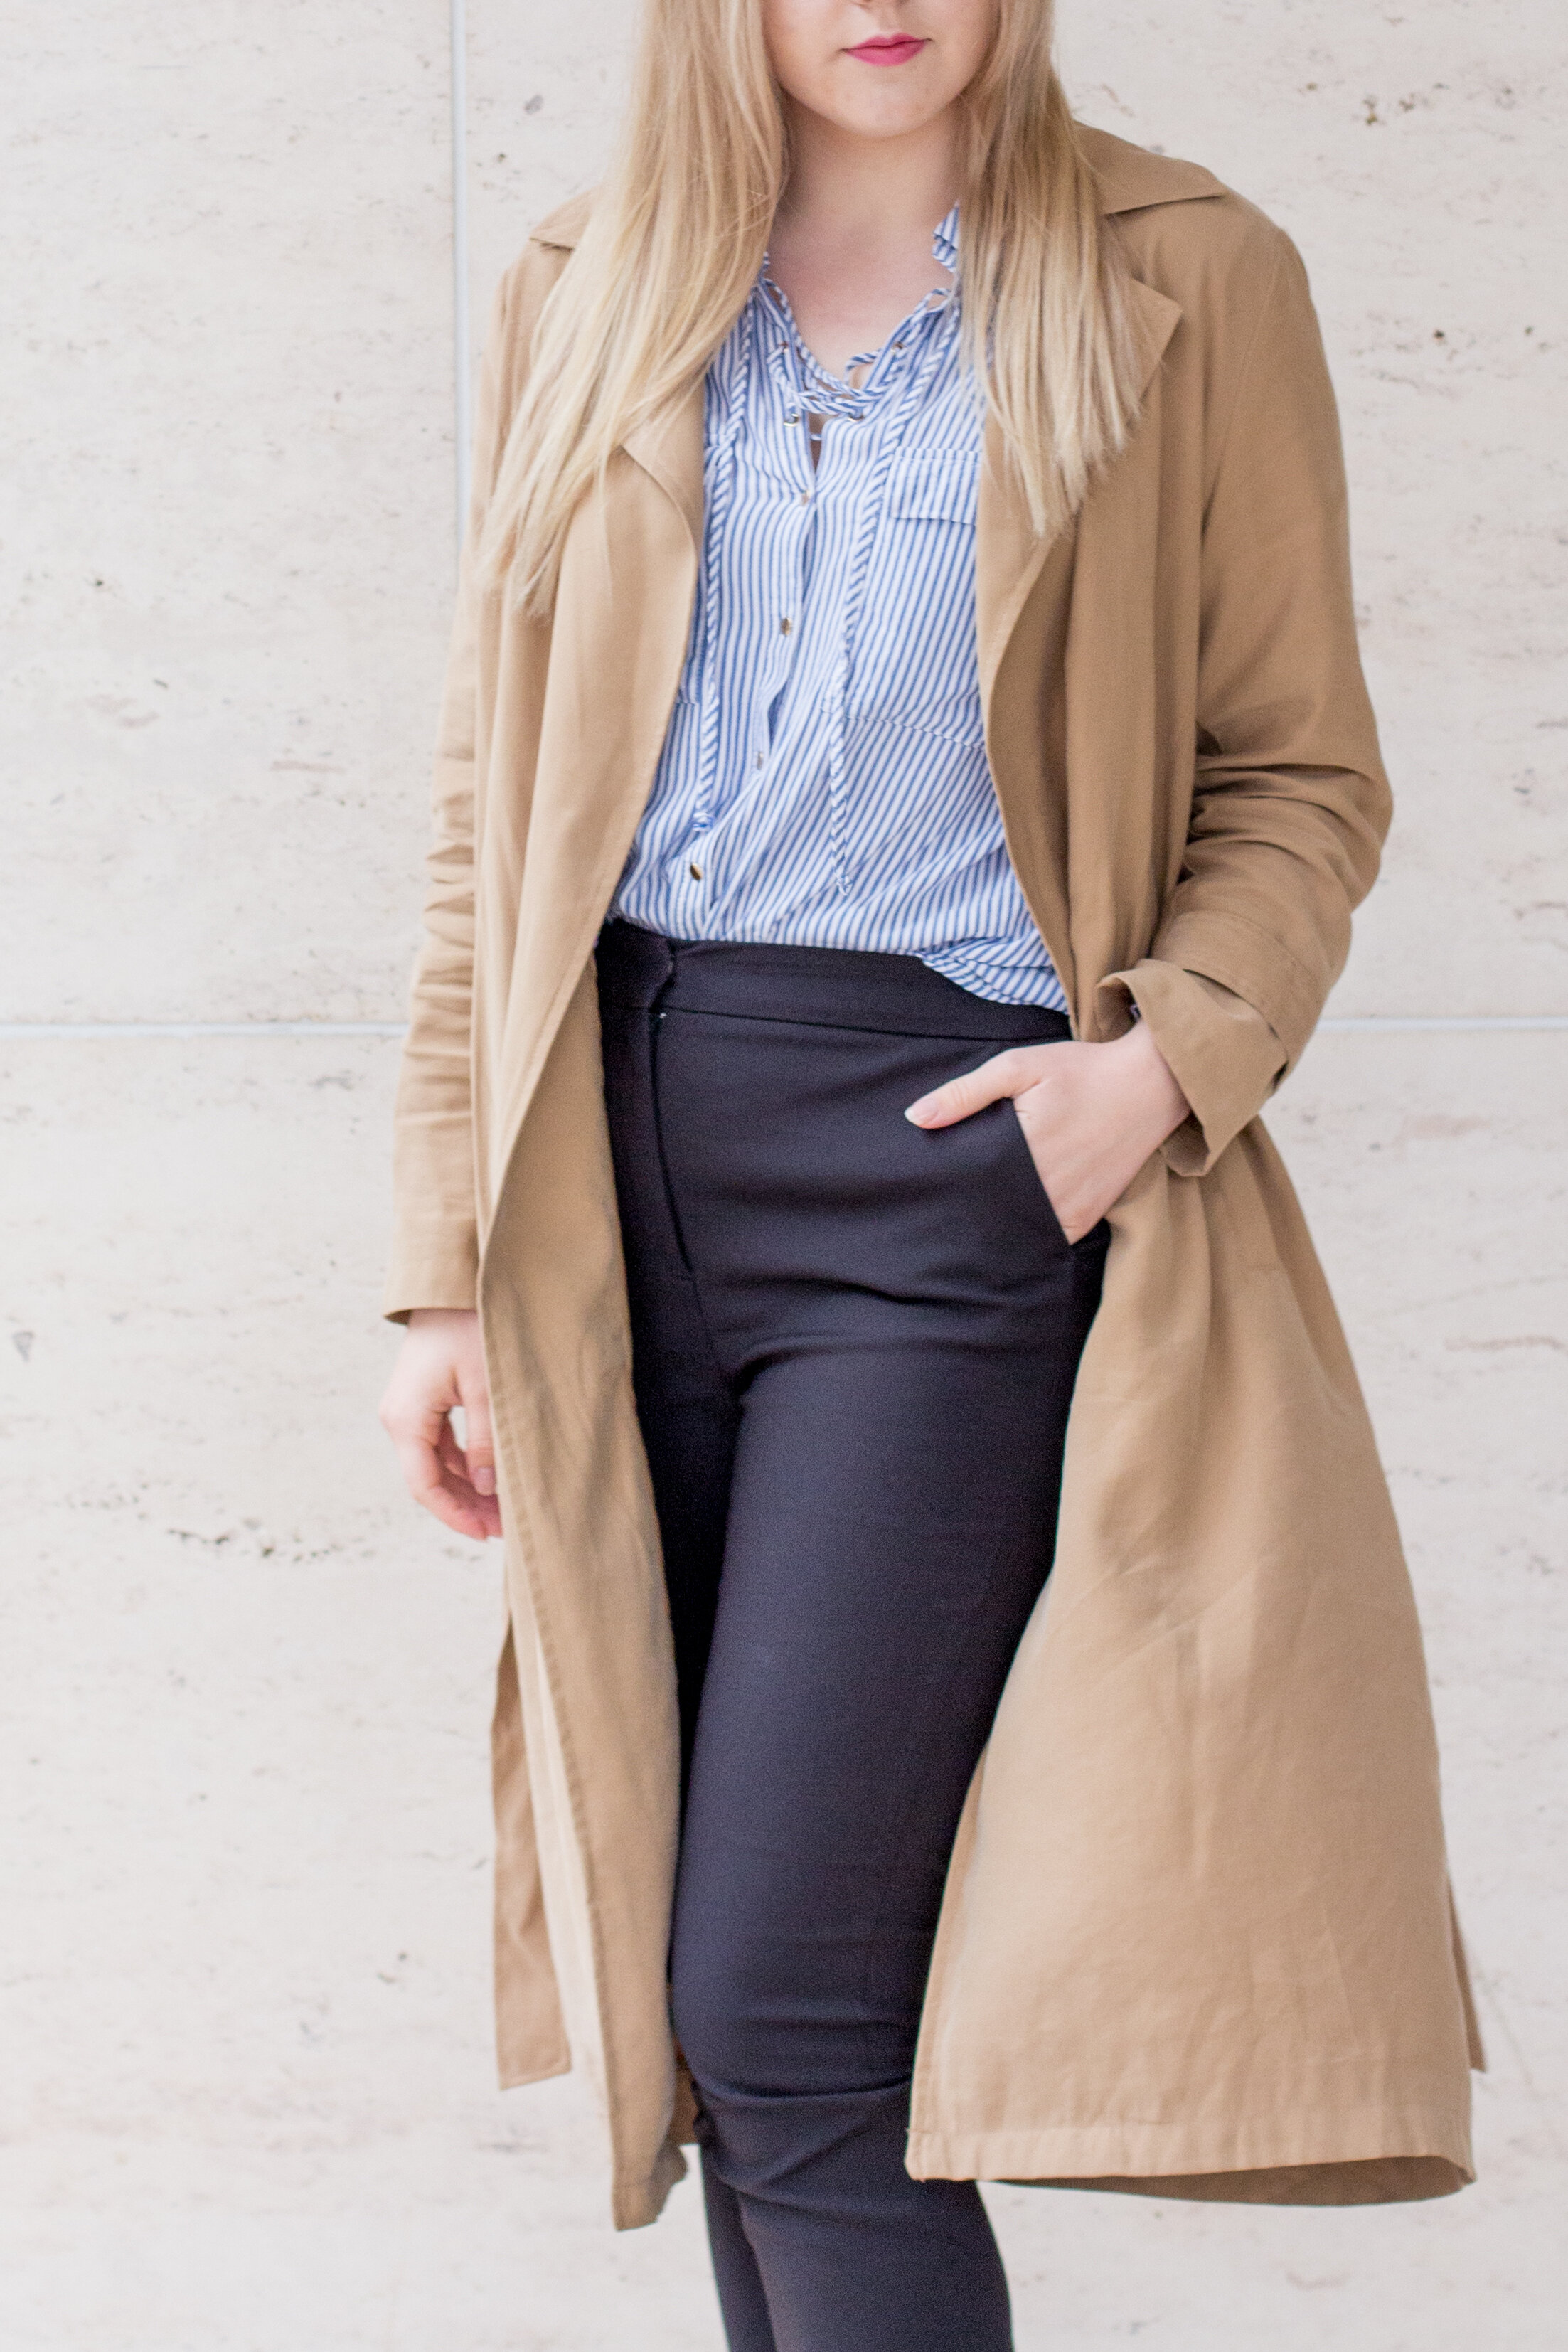 Trench coat fall (19 of 21).jpg